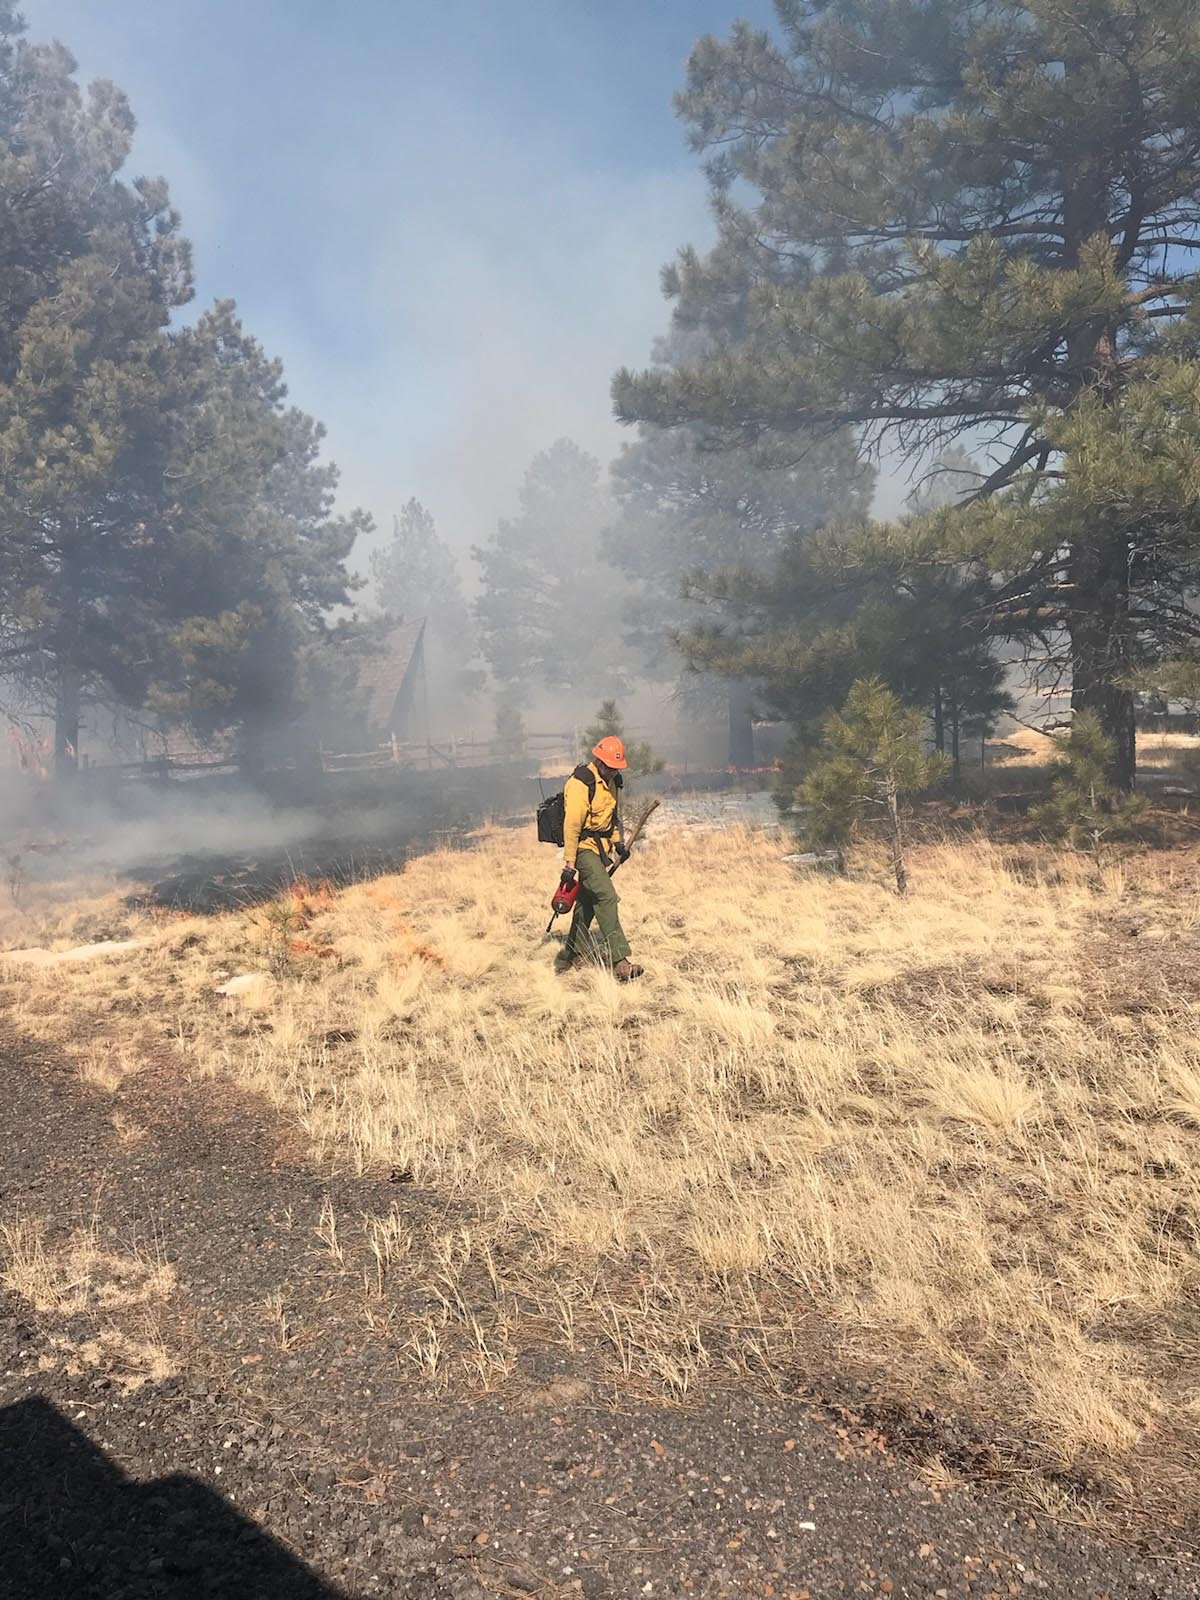 They say the wildfire burned in grasslands southeast of Kendrick Park and produced smoked that had the potential to limit visibility in the area. (Source: U.S. Forest Services)